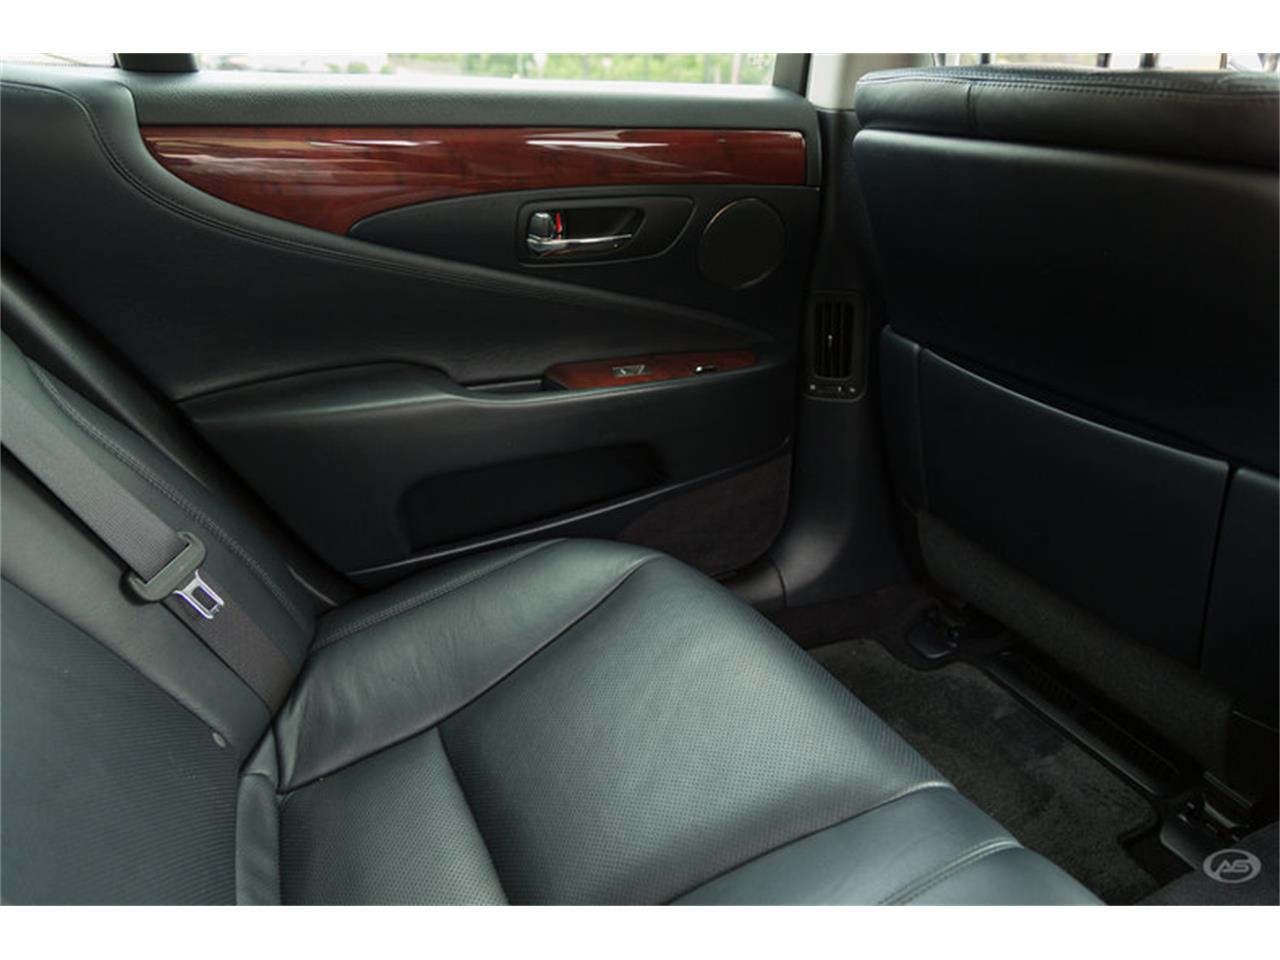 Large Picture of '08 LS460 located in Collierville Tennessee - $19,900.00 - L6Q7